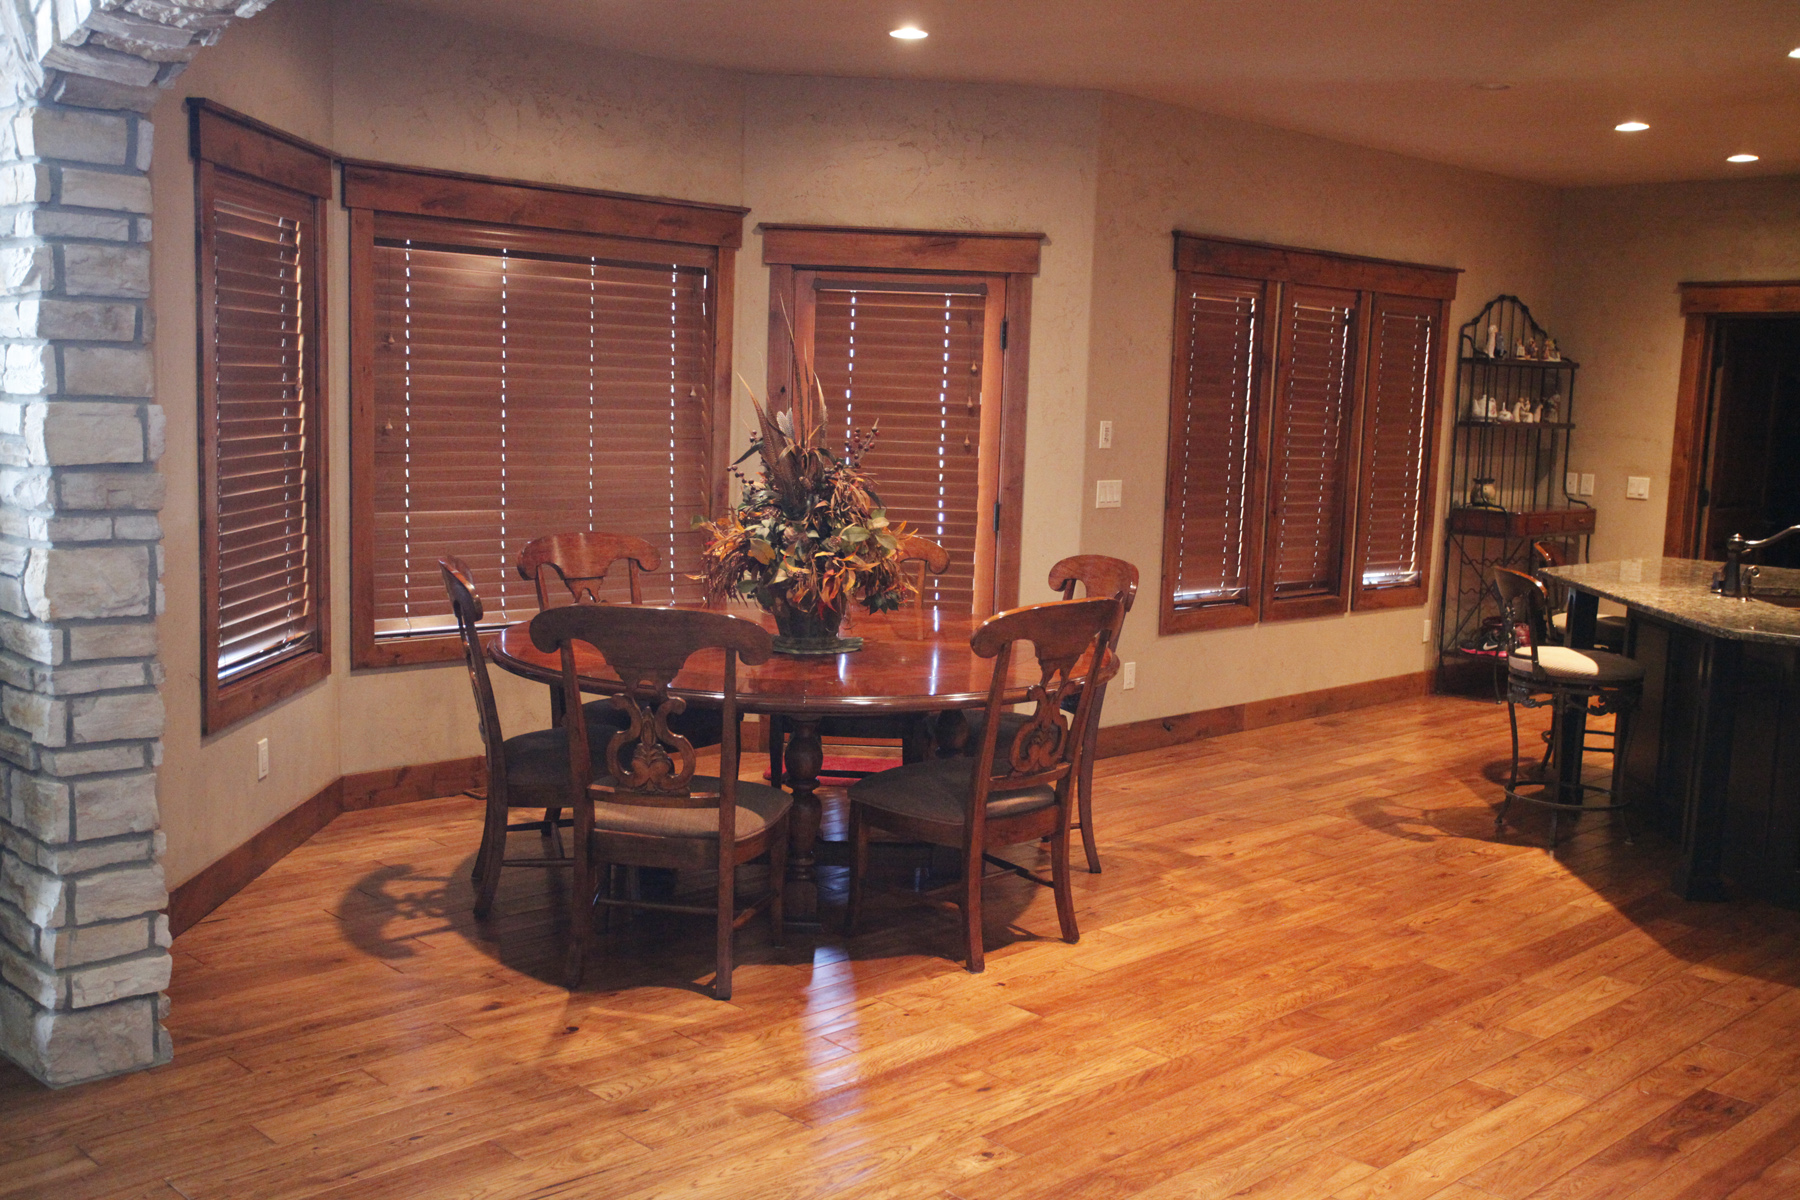 hardwood floor kitchens wood floors in kitchen Large kitchen hardwood floor